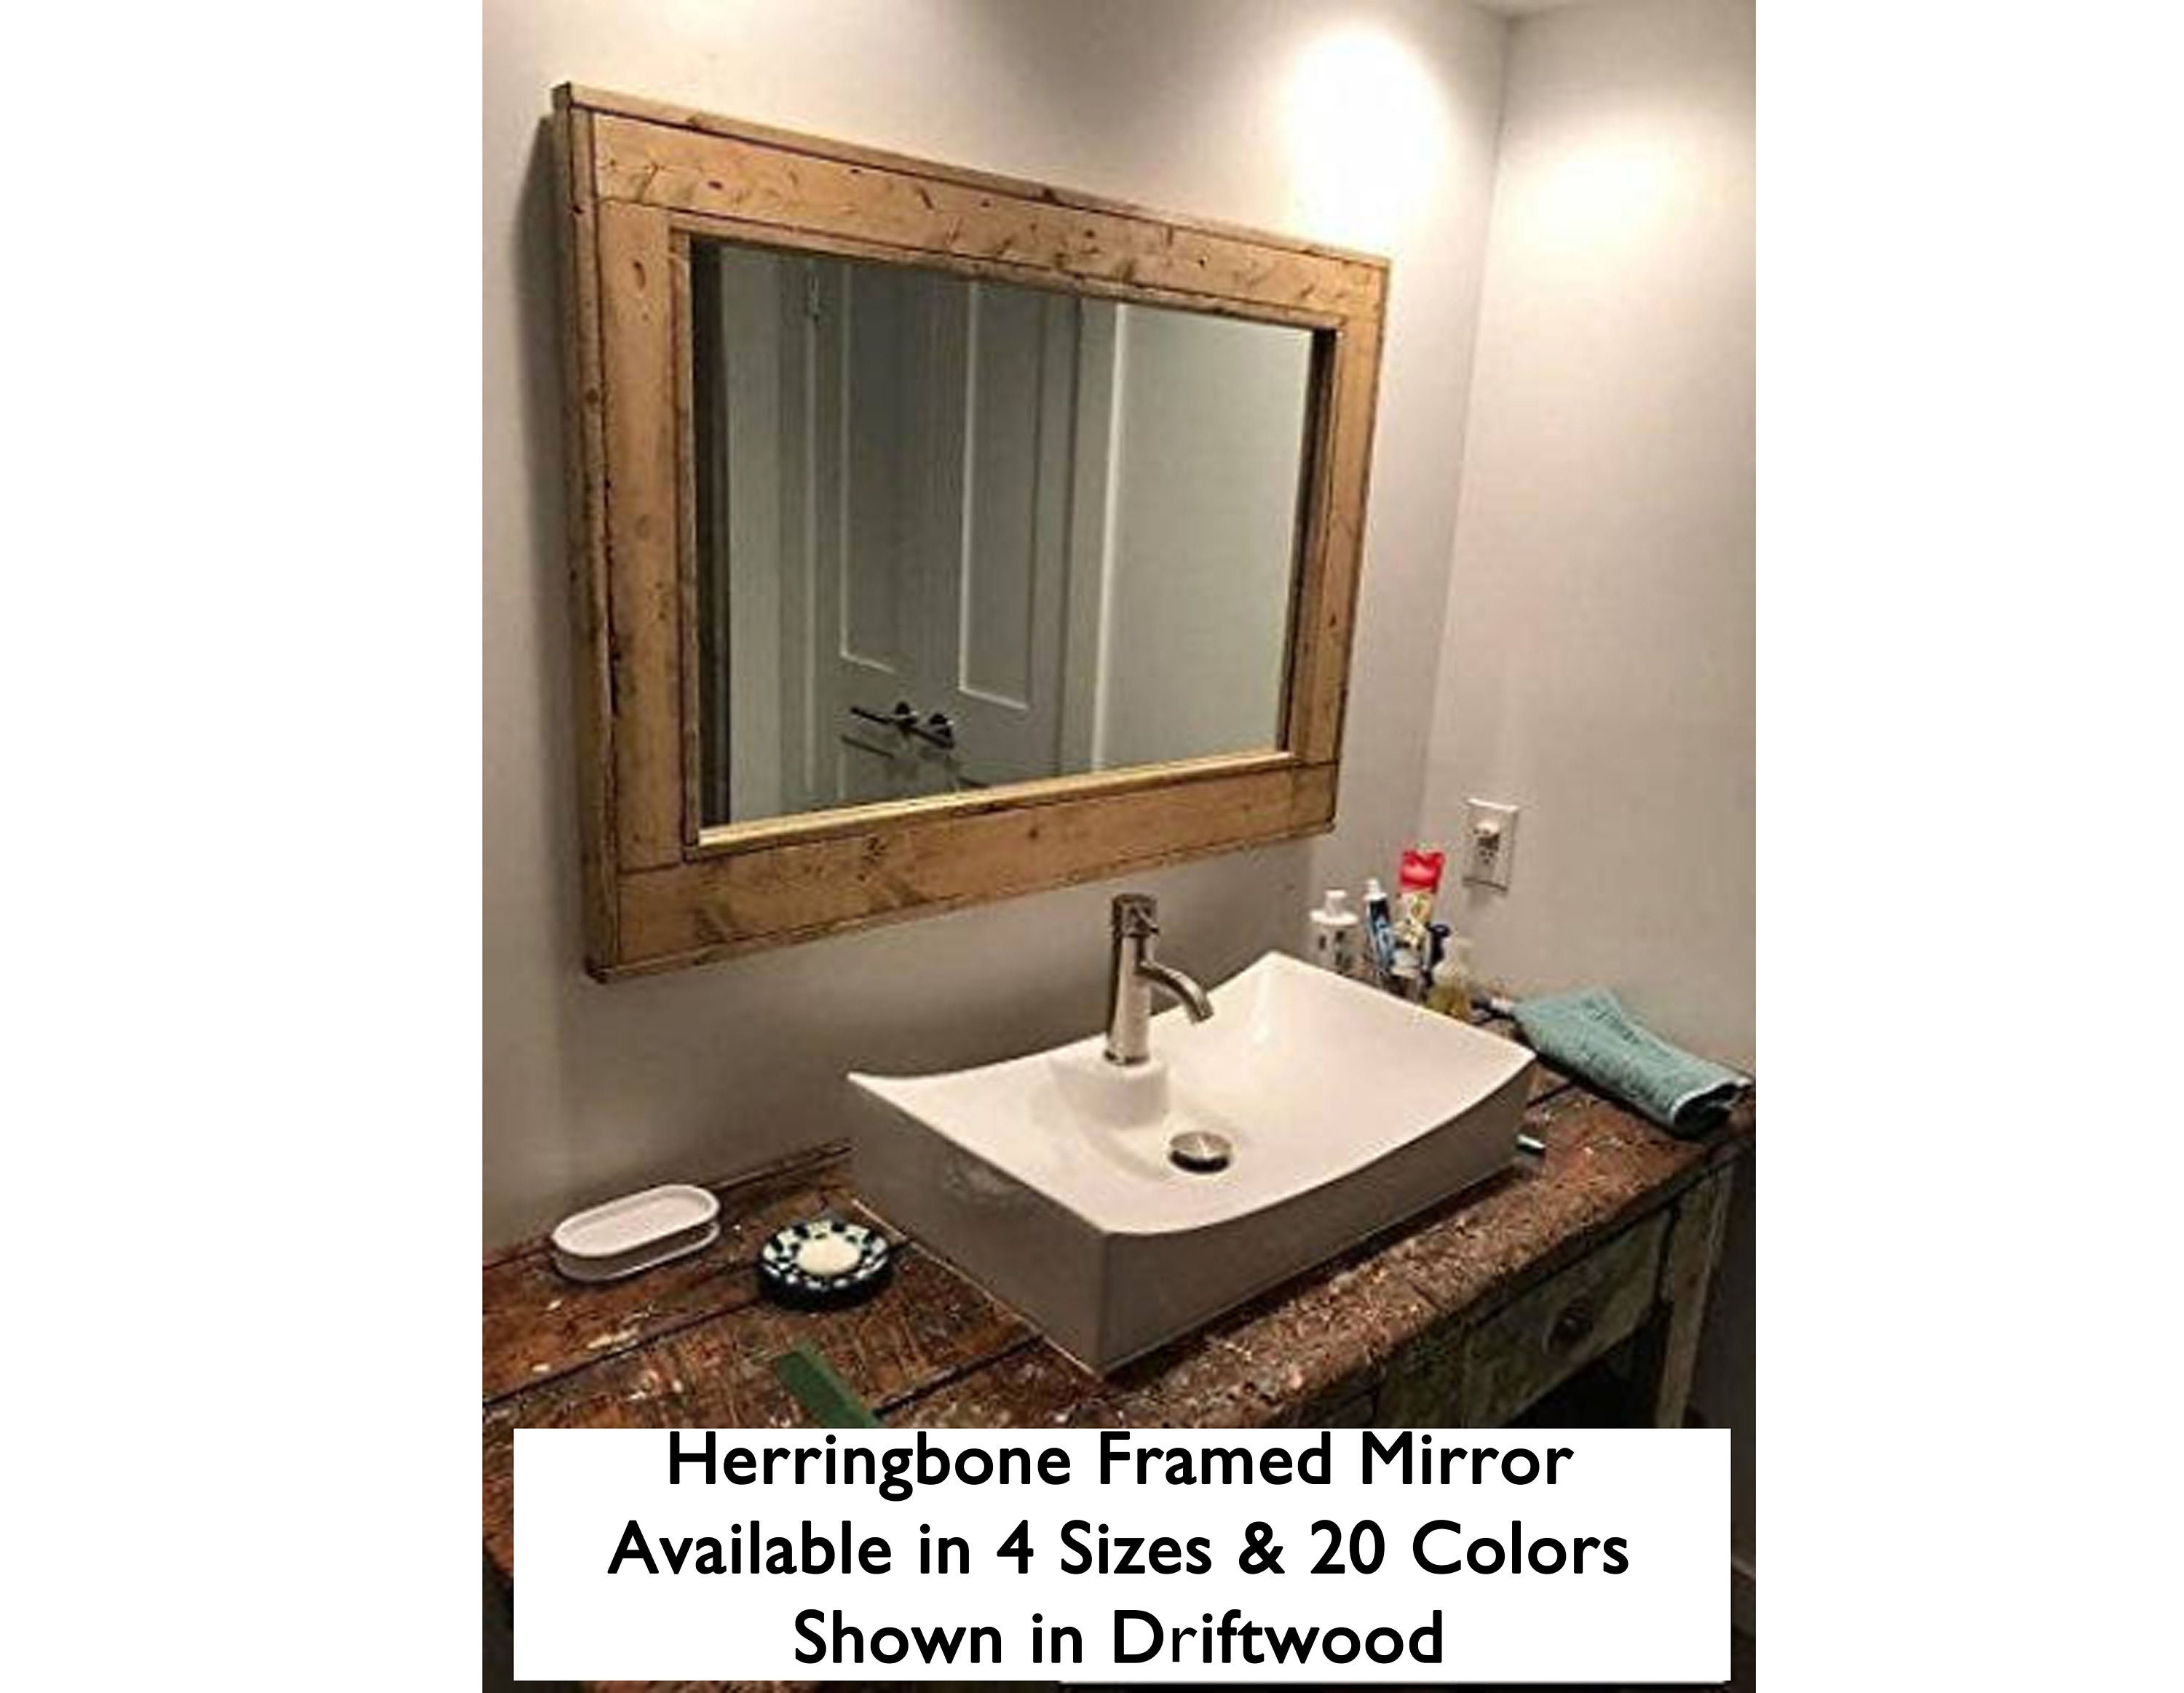 Natural Rustic Wood Framed Mirror Available In 4 Sizes And 20 Stain Colors Shown In Special Walnut Large Framed Mirror Home Decor Vanity Mirror Reclaimed Rustic Home Decor Mirror Mirrors Home Decor